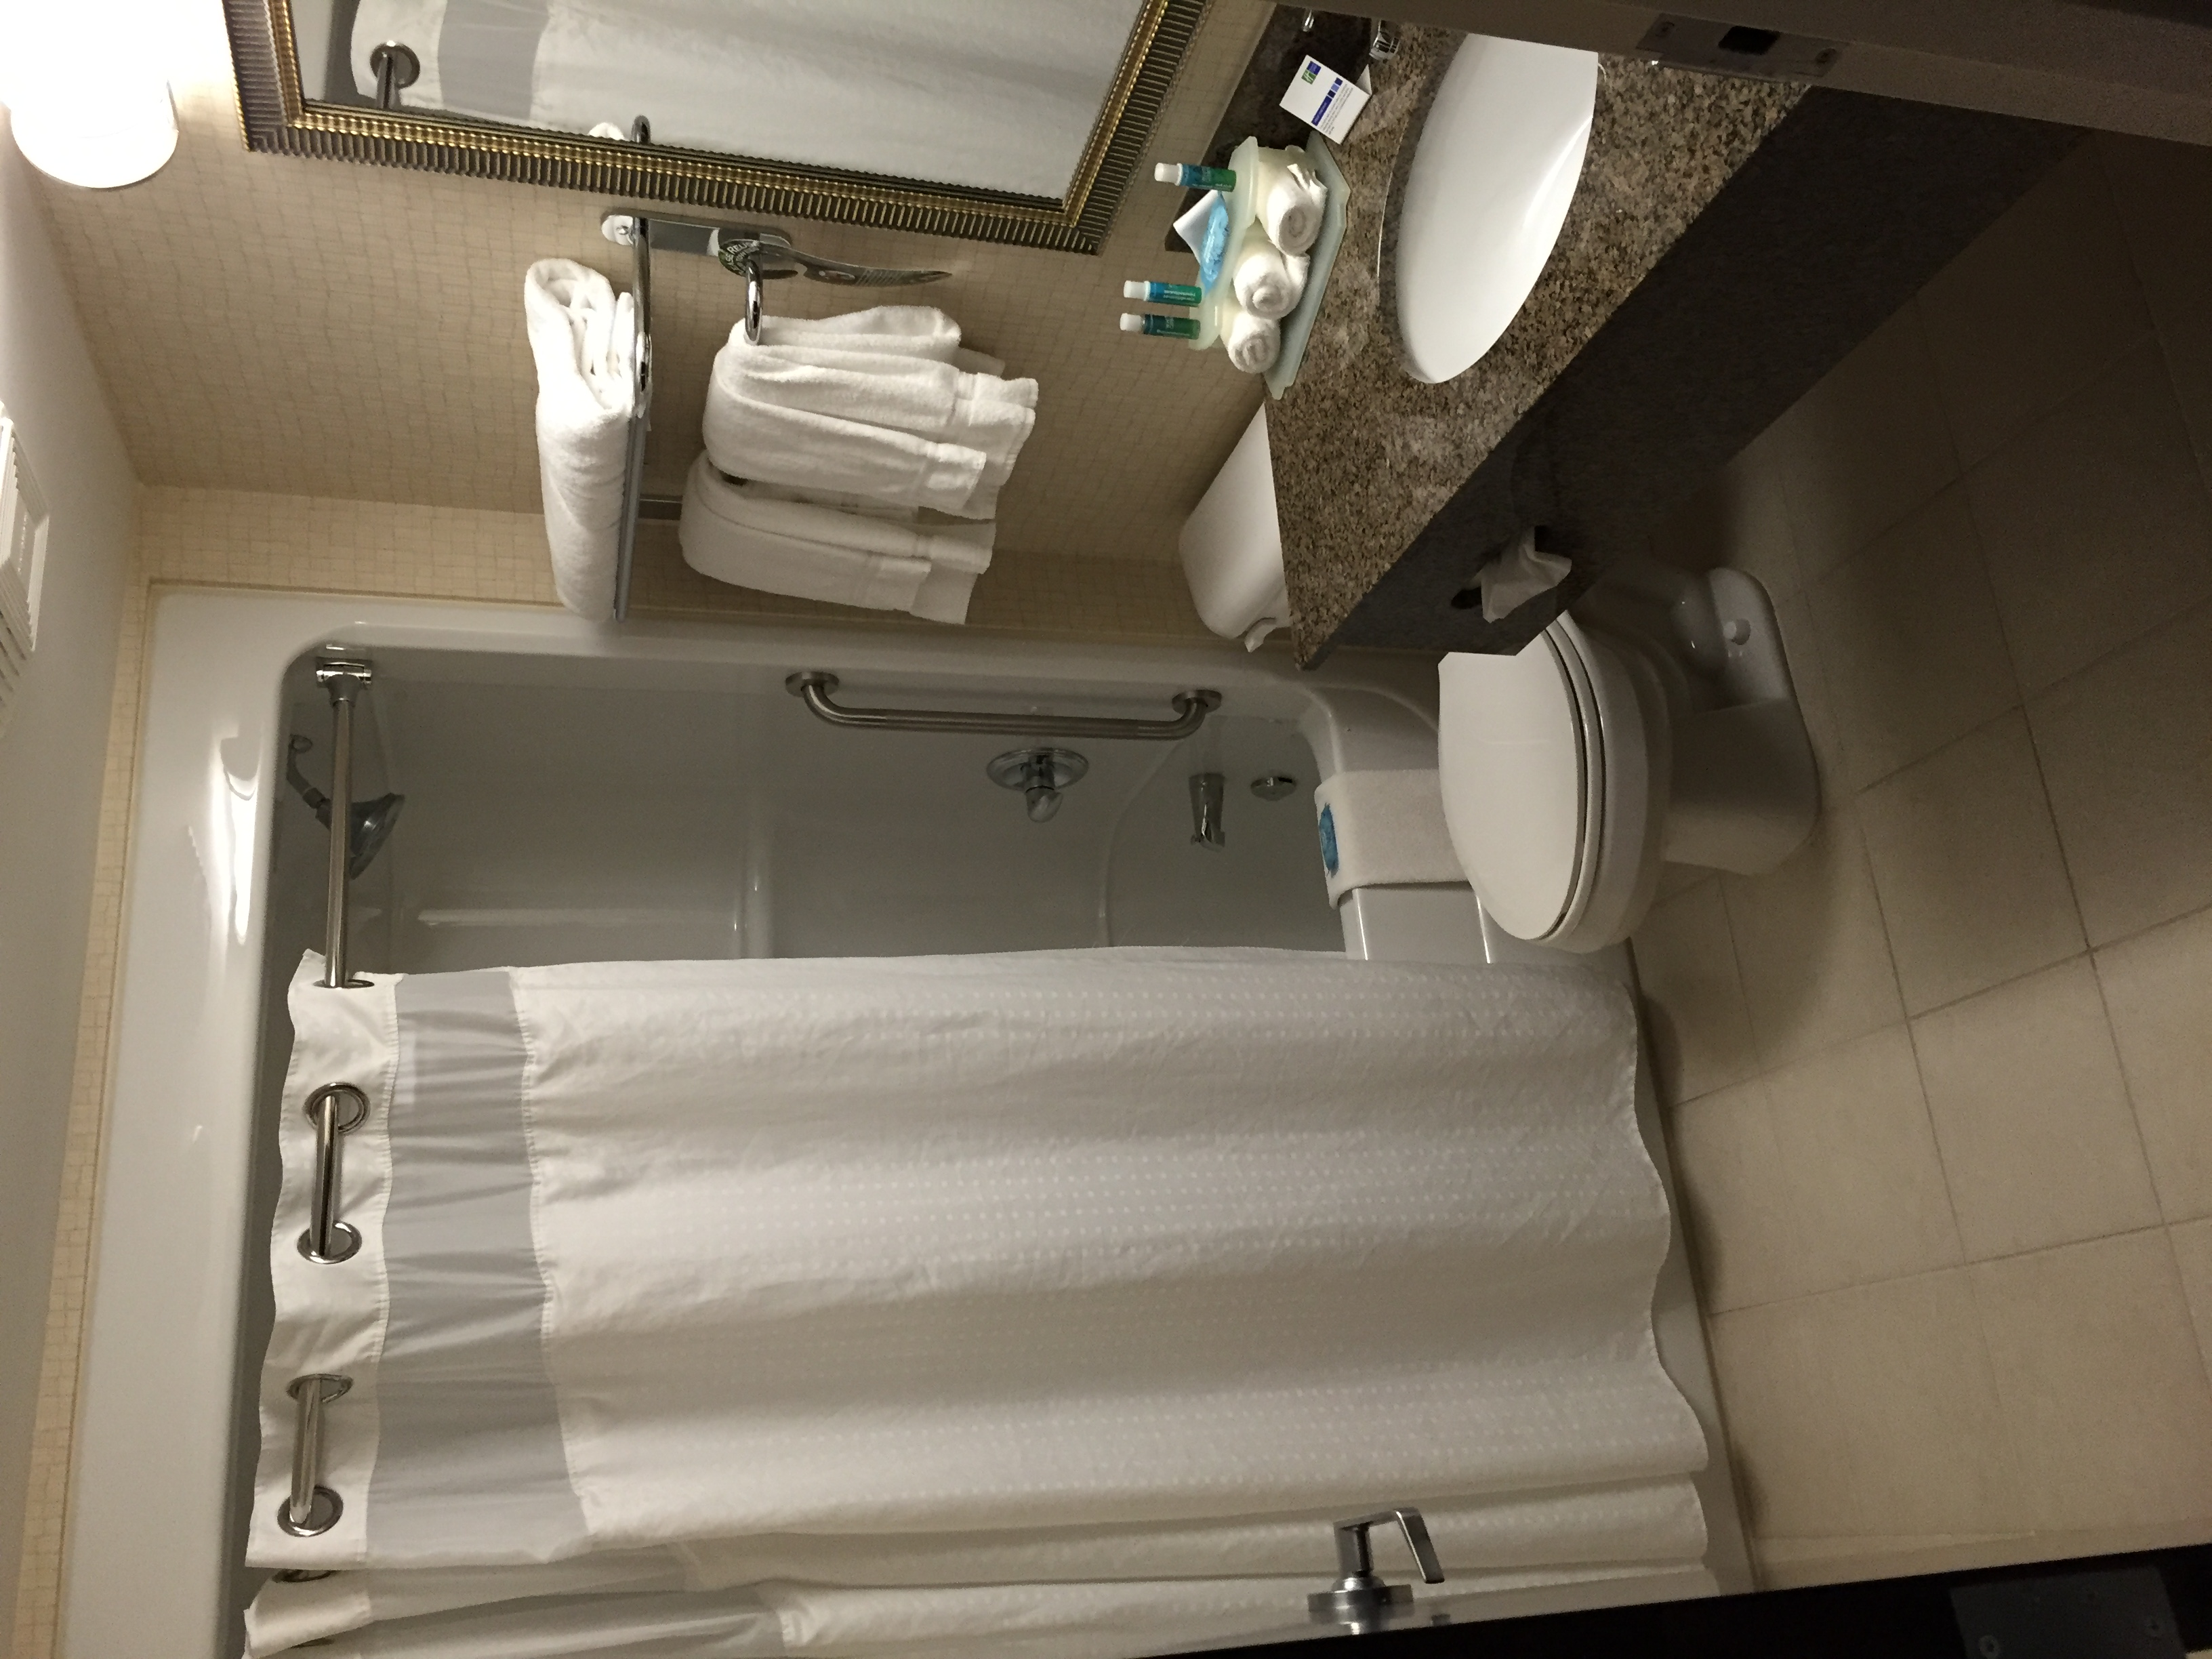 Holiday Inn Express & Suites Kincardine reviews, opinions and consumer feedback